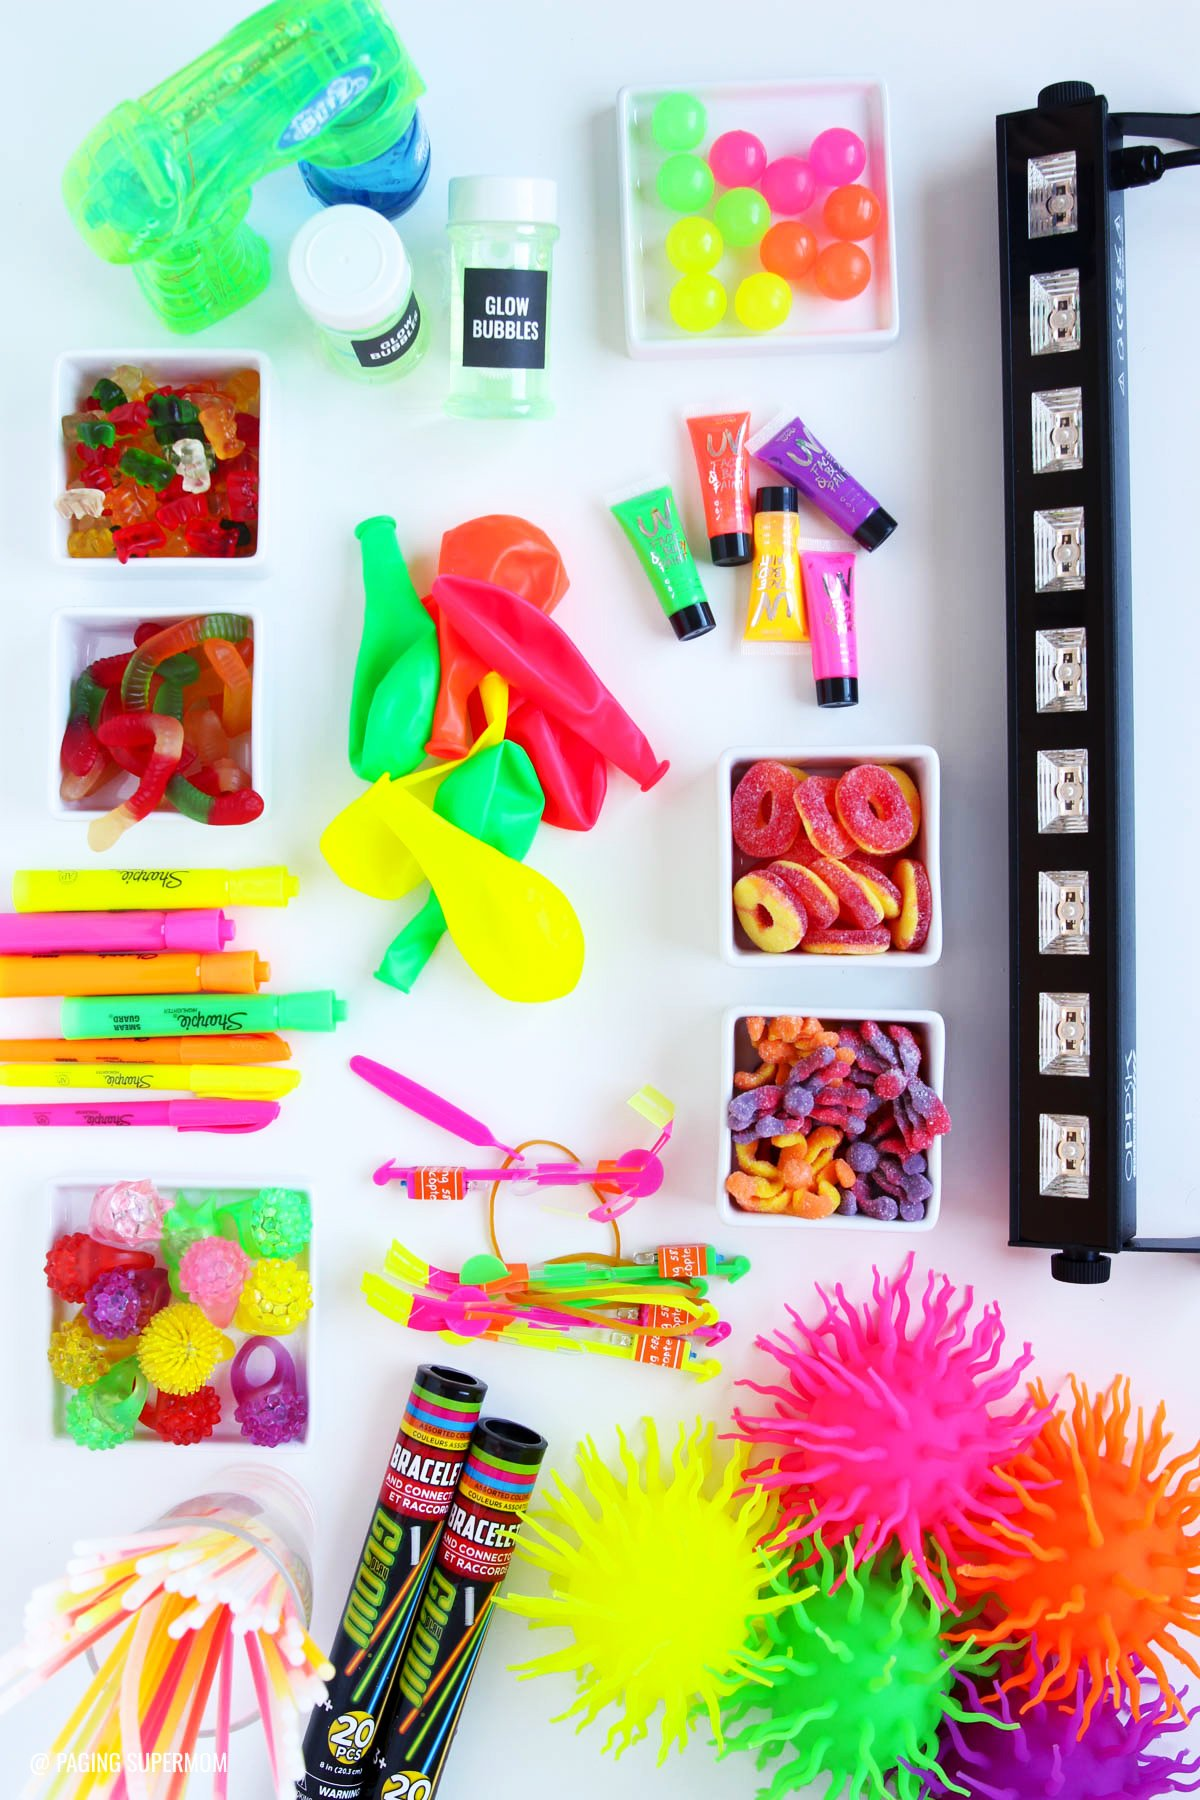 Glow stick party favor ideas